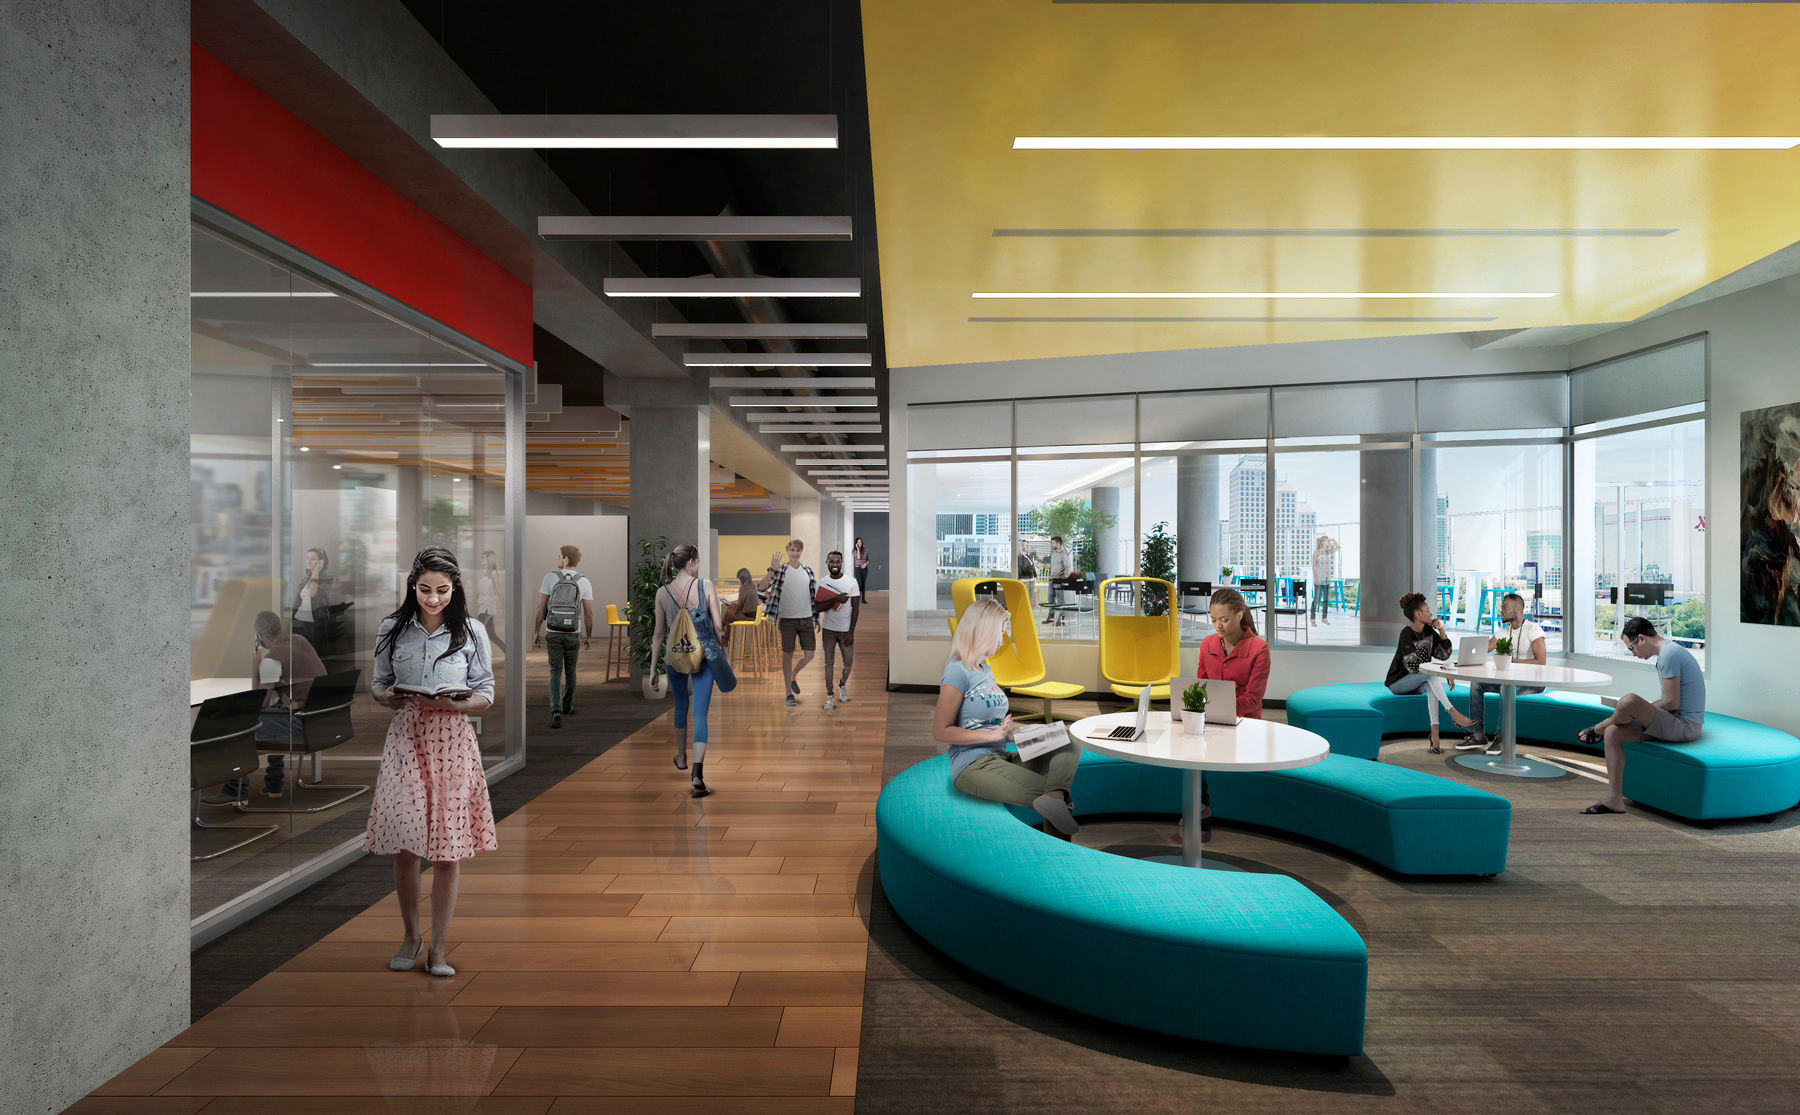 The Collaborative also features space for individual or group studying with views of downtown Orlando and Creative Village Central Park.